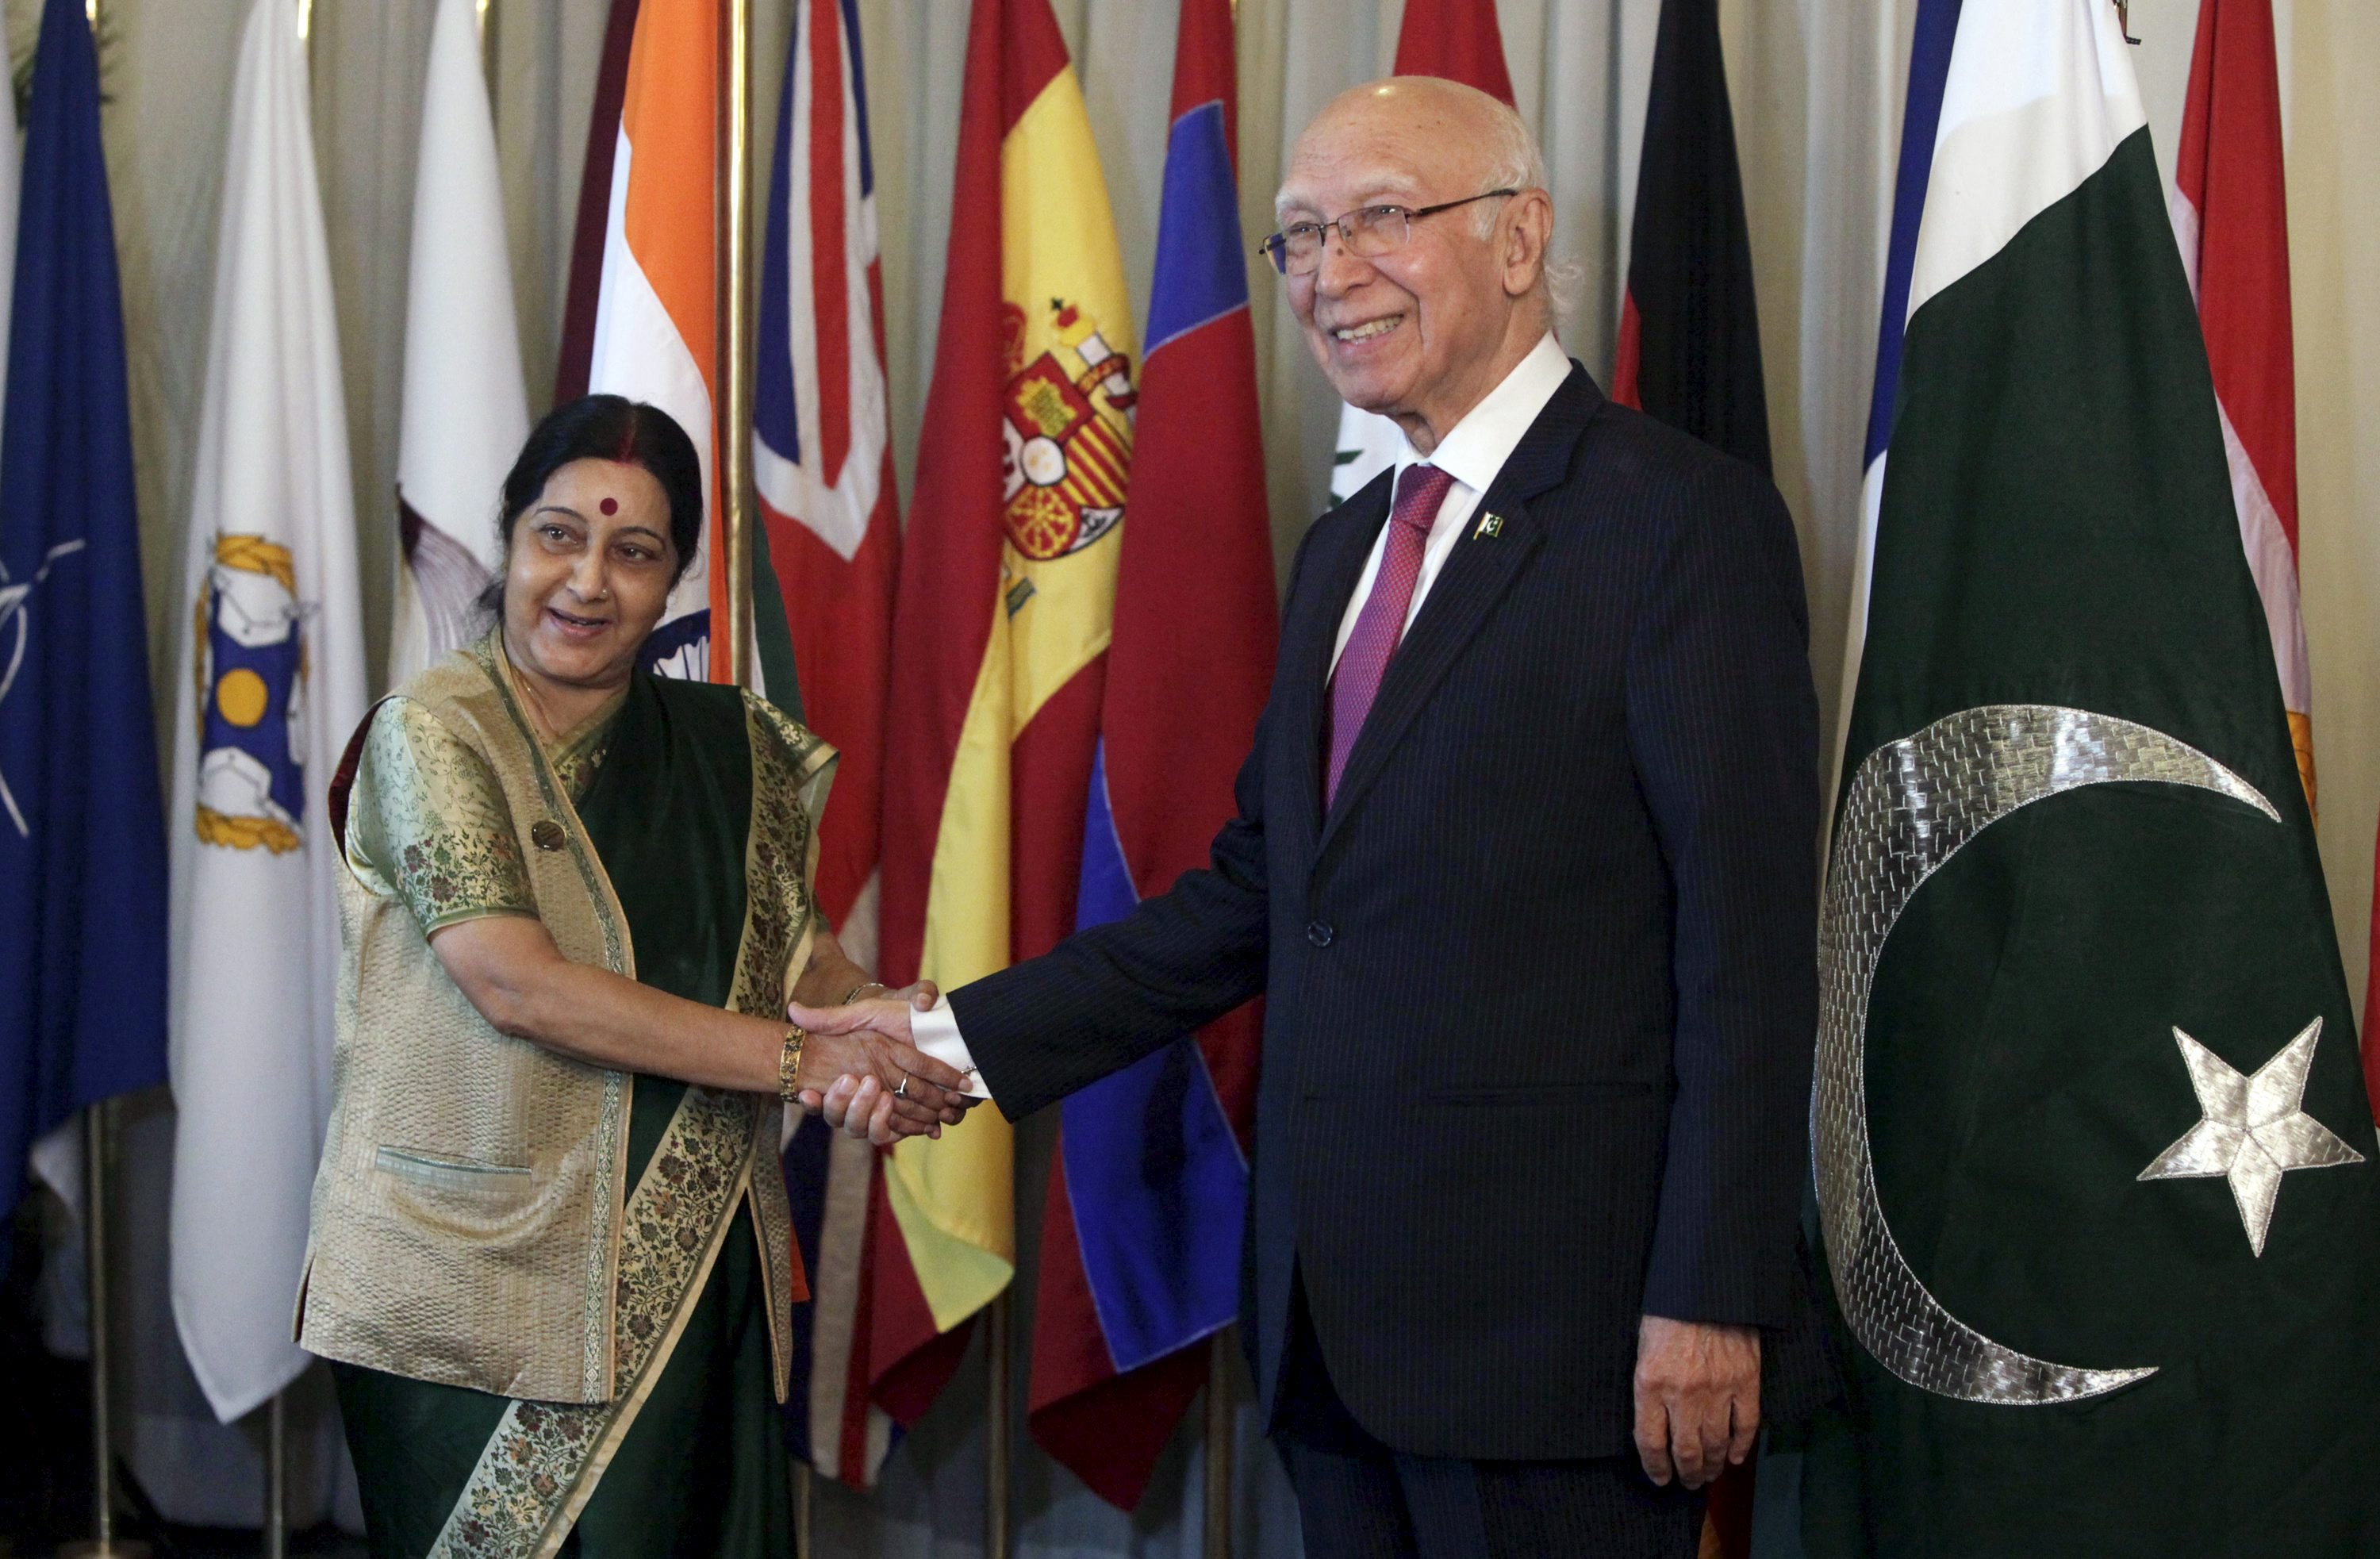 Advisor to Prime Minister for Foreign Affairs Sartaj Aziz (right) shakes hands with Indian Foreign Minister Sushma Swaraj after their meeting at the foreign ministry in Islamabad, Pakistan, December 9, 2015. Photo: Reuters